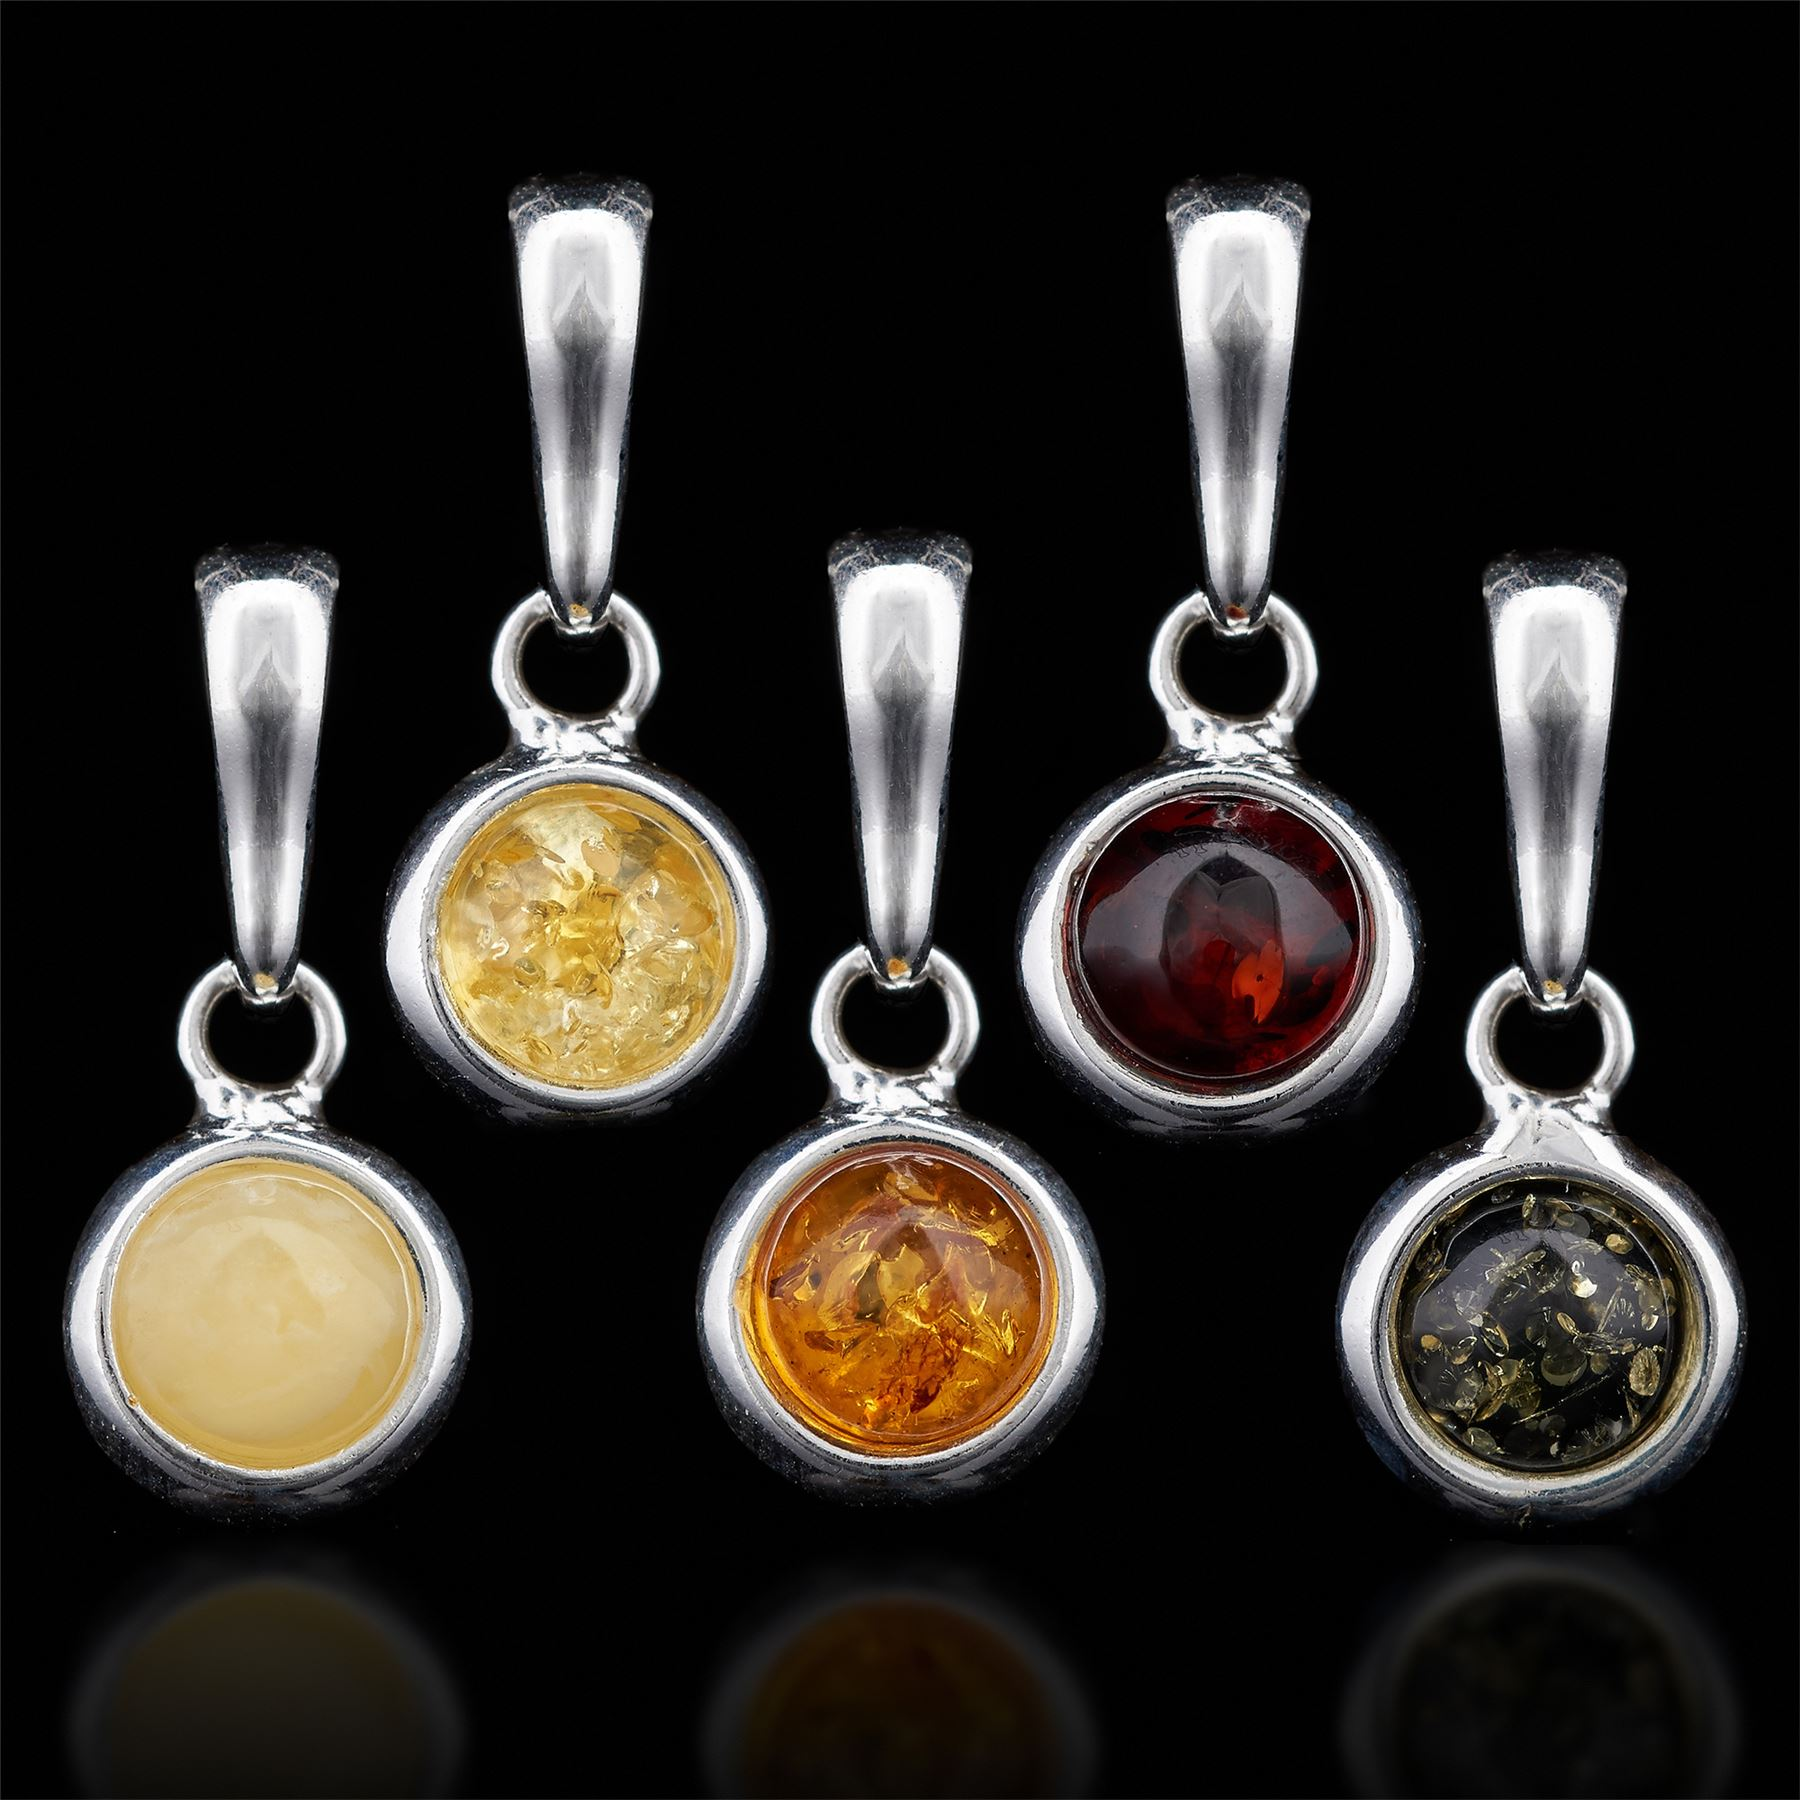 Amberta-Genuine-925-Sterling-Silver-Pendant-with-Natural-Baltic-Amber-Gemstone